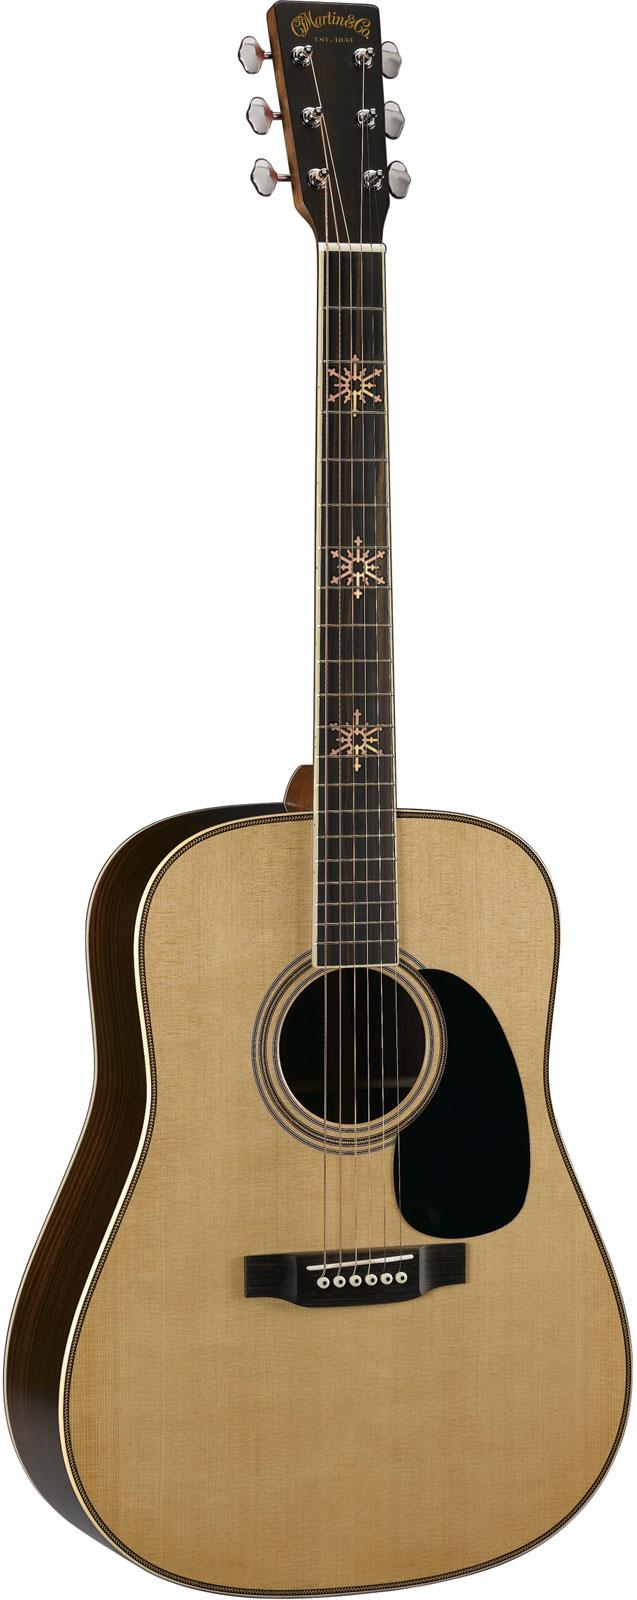 Vintage 1967 Martin D-35 Sitka and Brazilian Rosewood ID